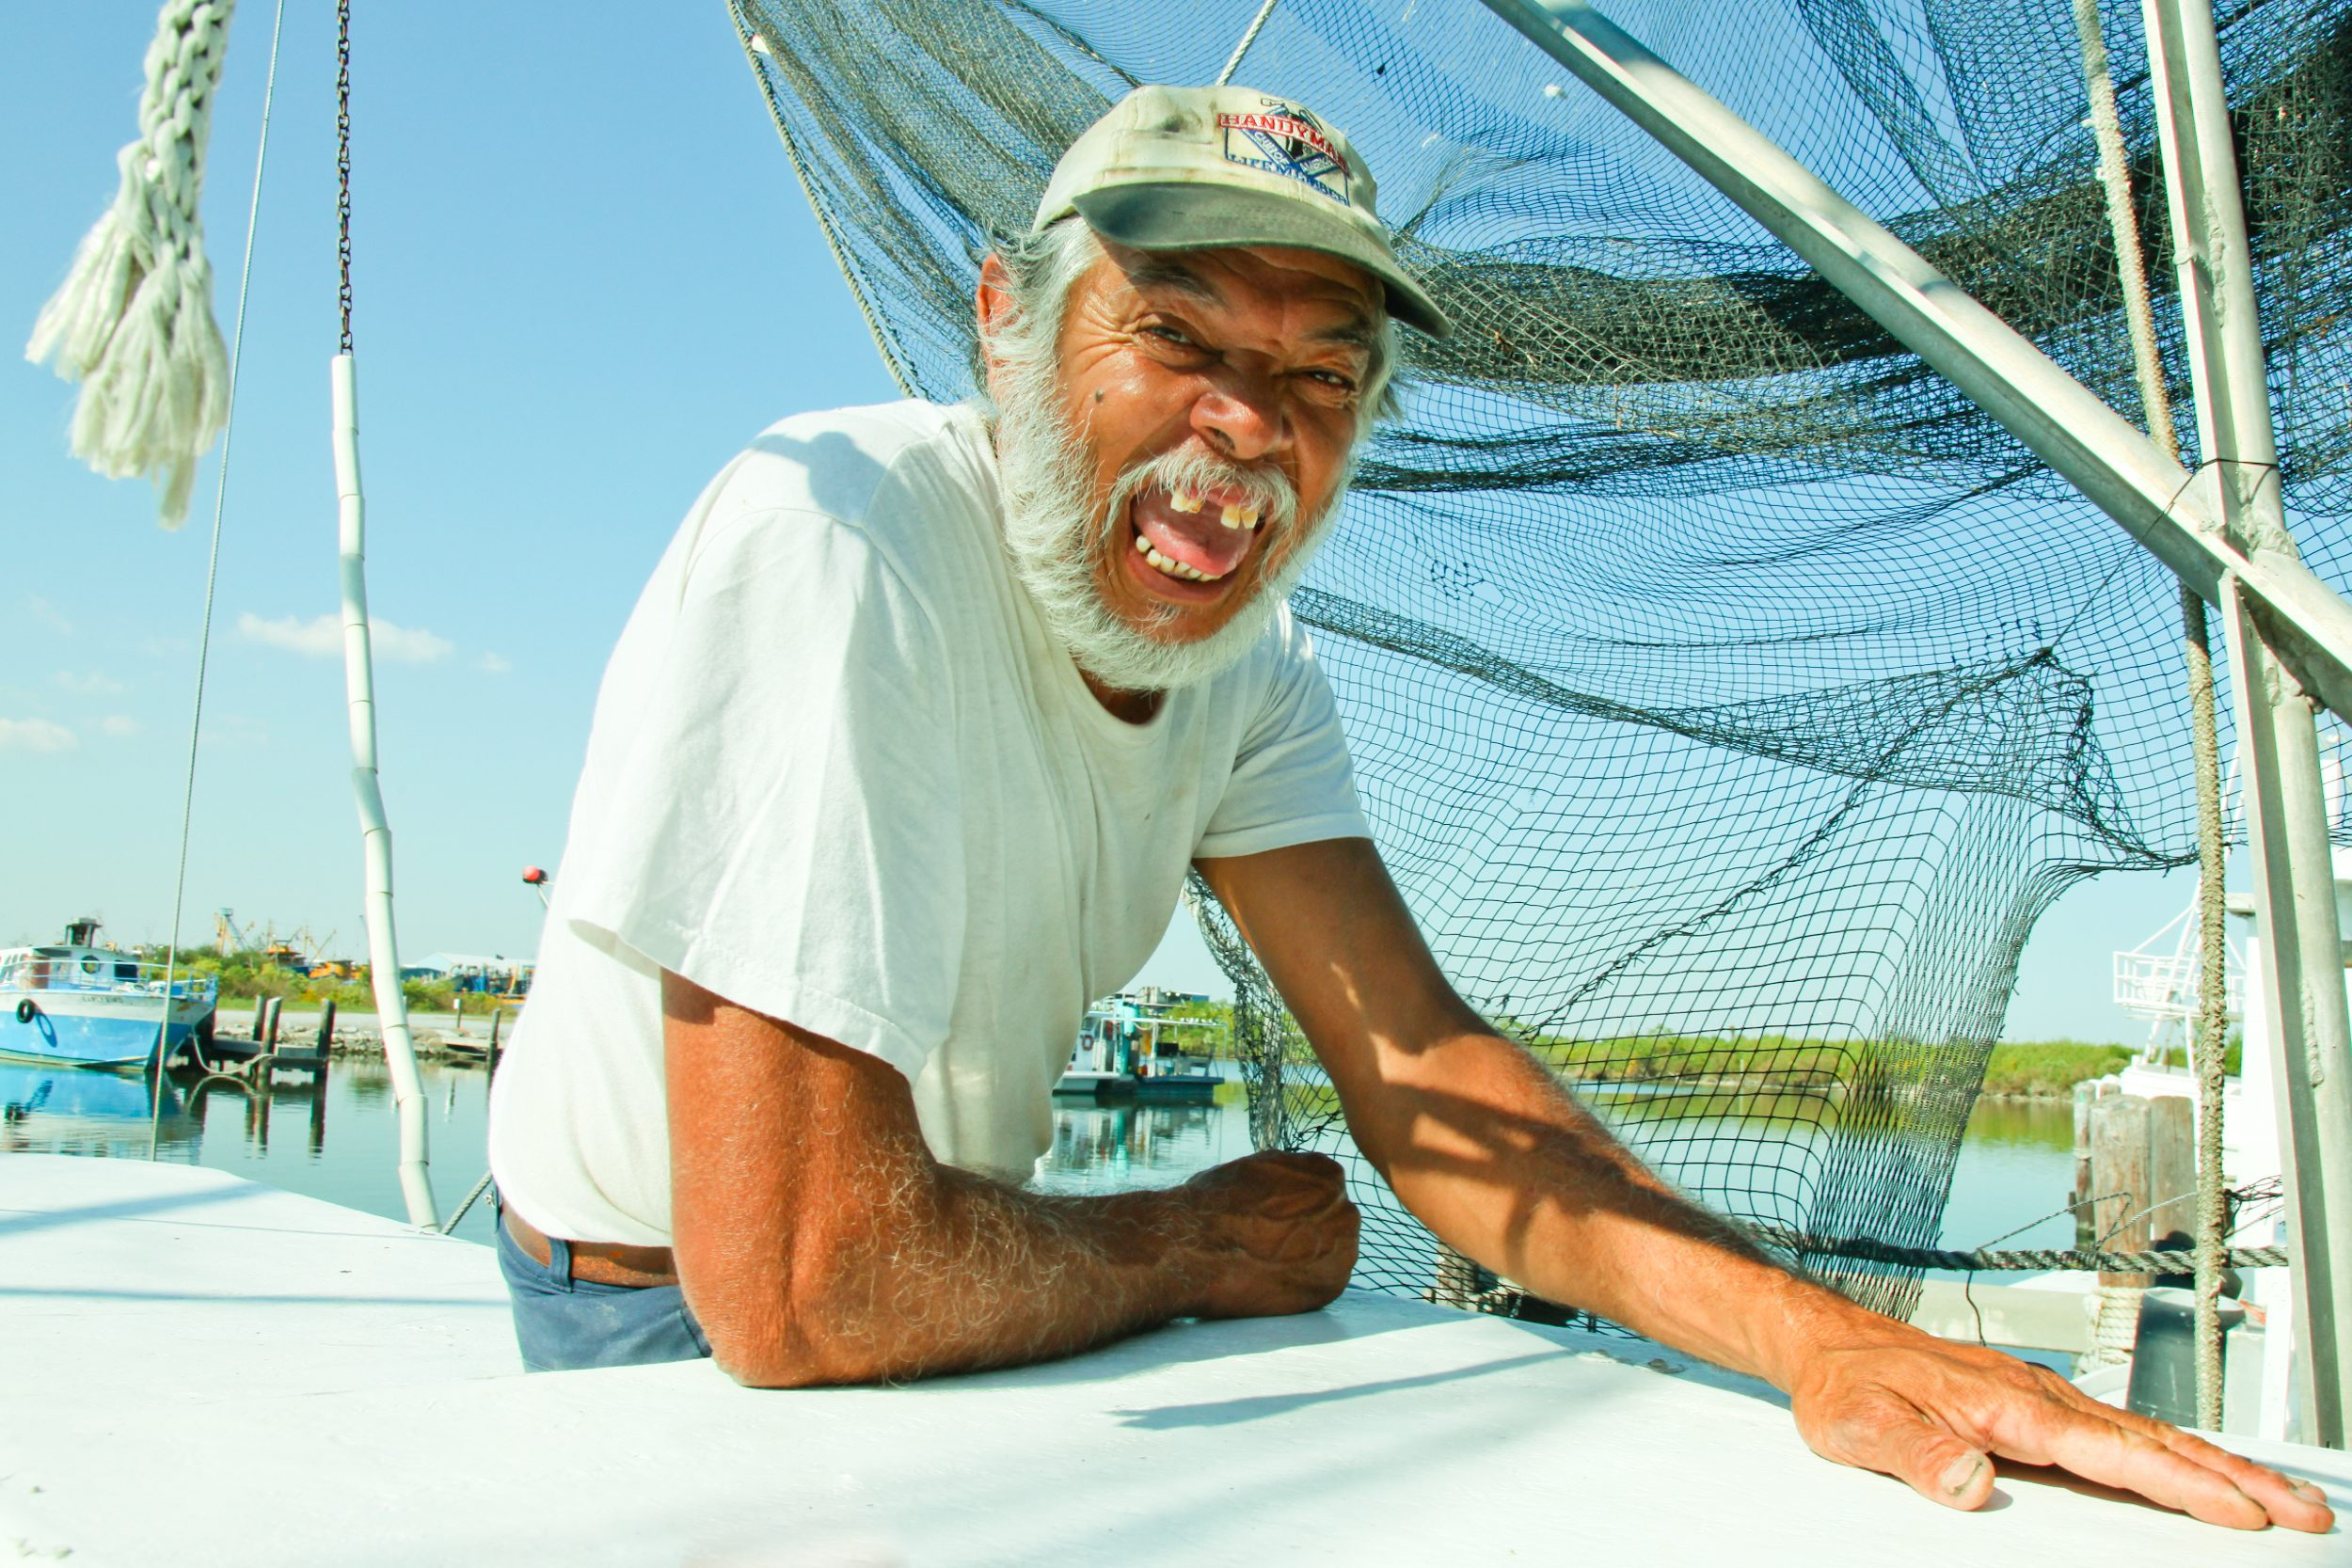 A Gulf Coast resident sits on his boat, smiling for the camera. <div class='credit'><strong>Credit:</strong> A Gulf Coast resident sits on his boat, smiling for the camera. </div>